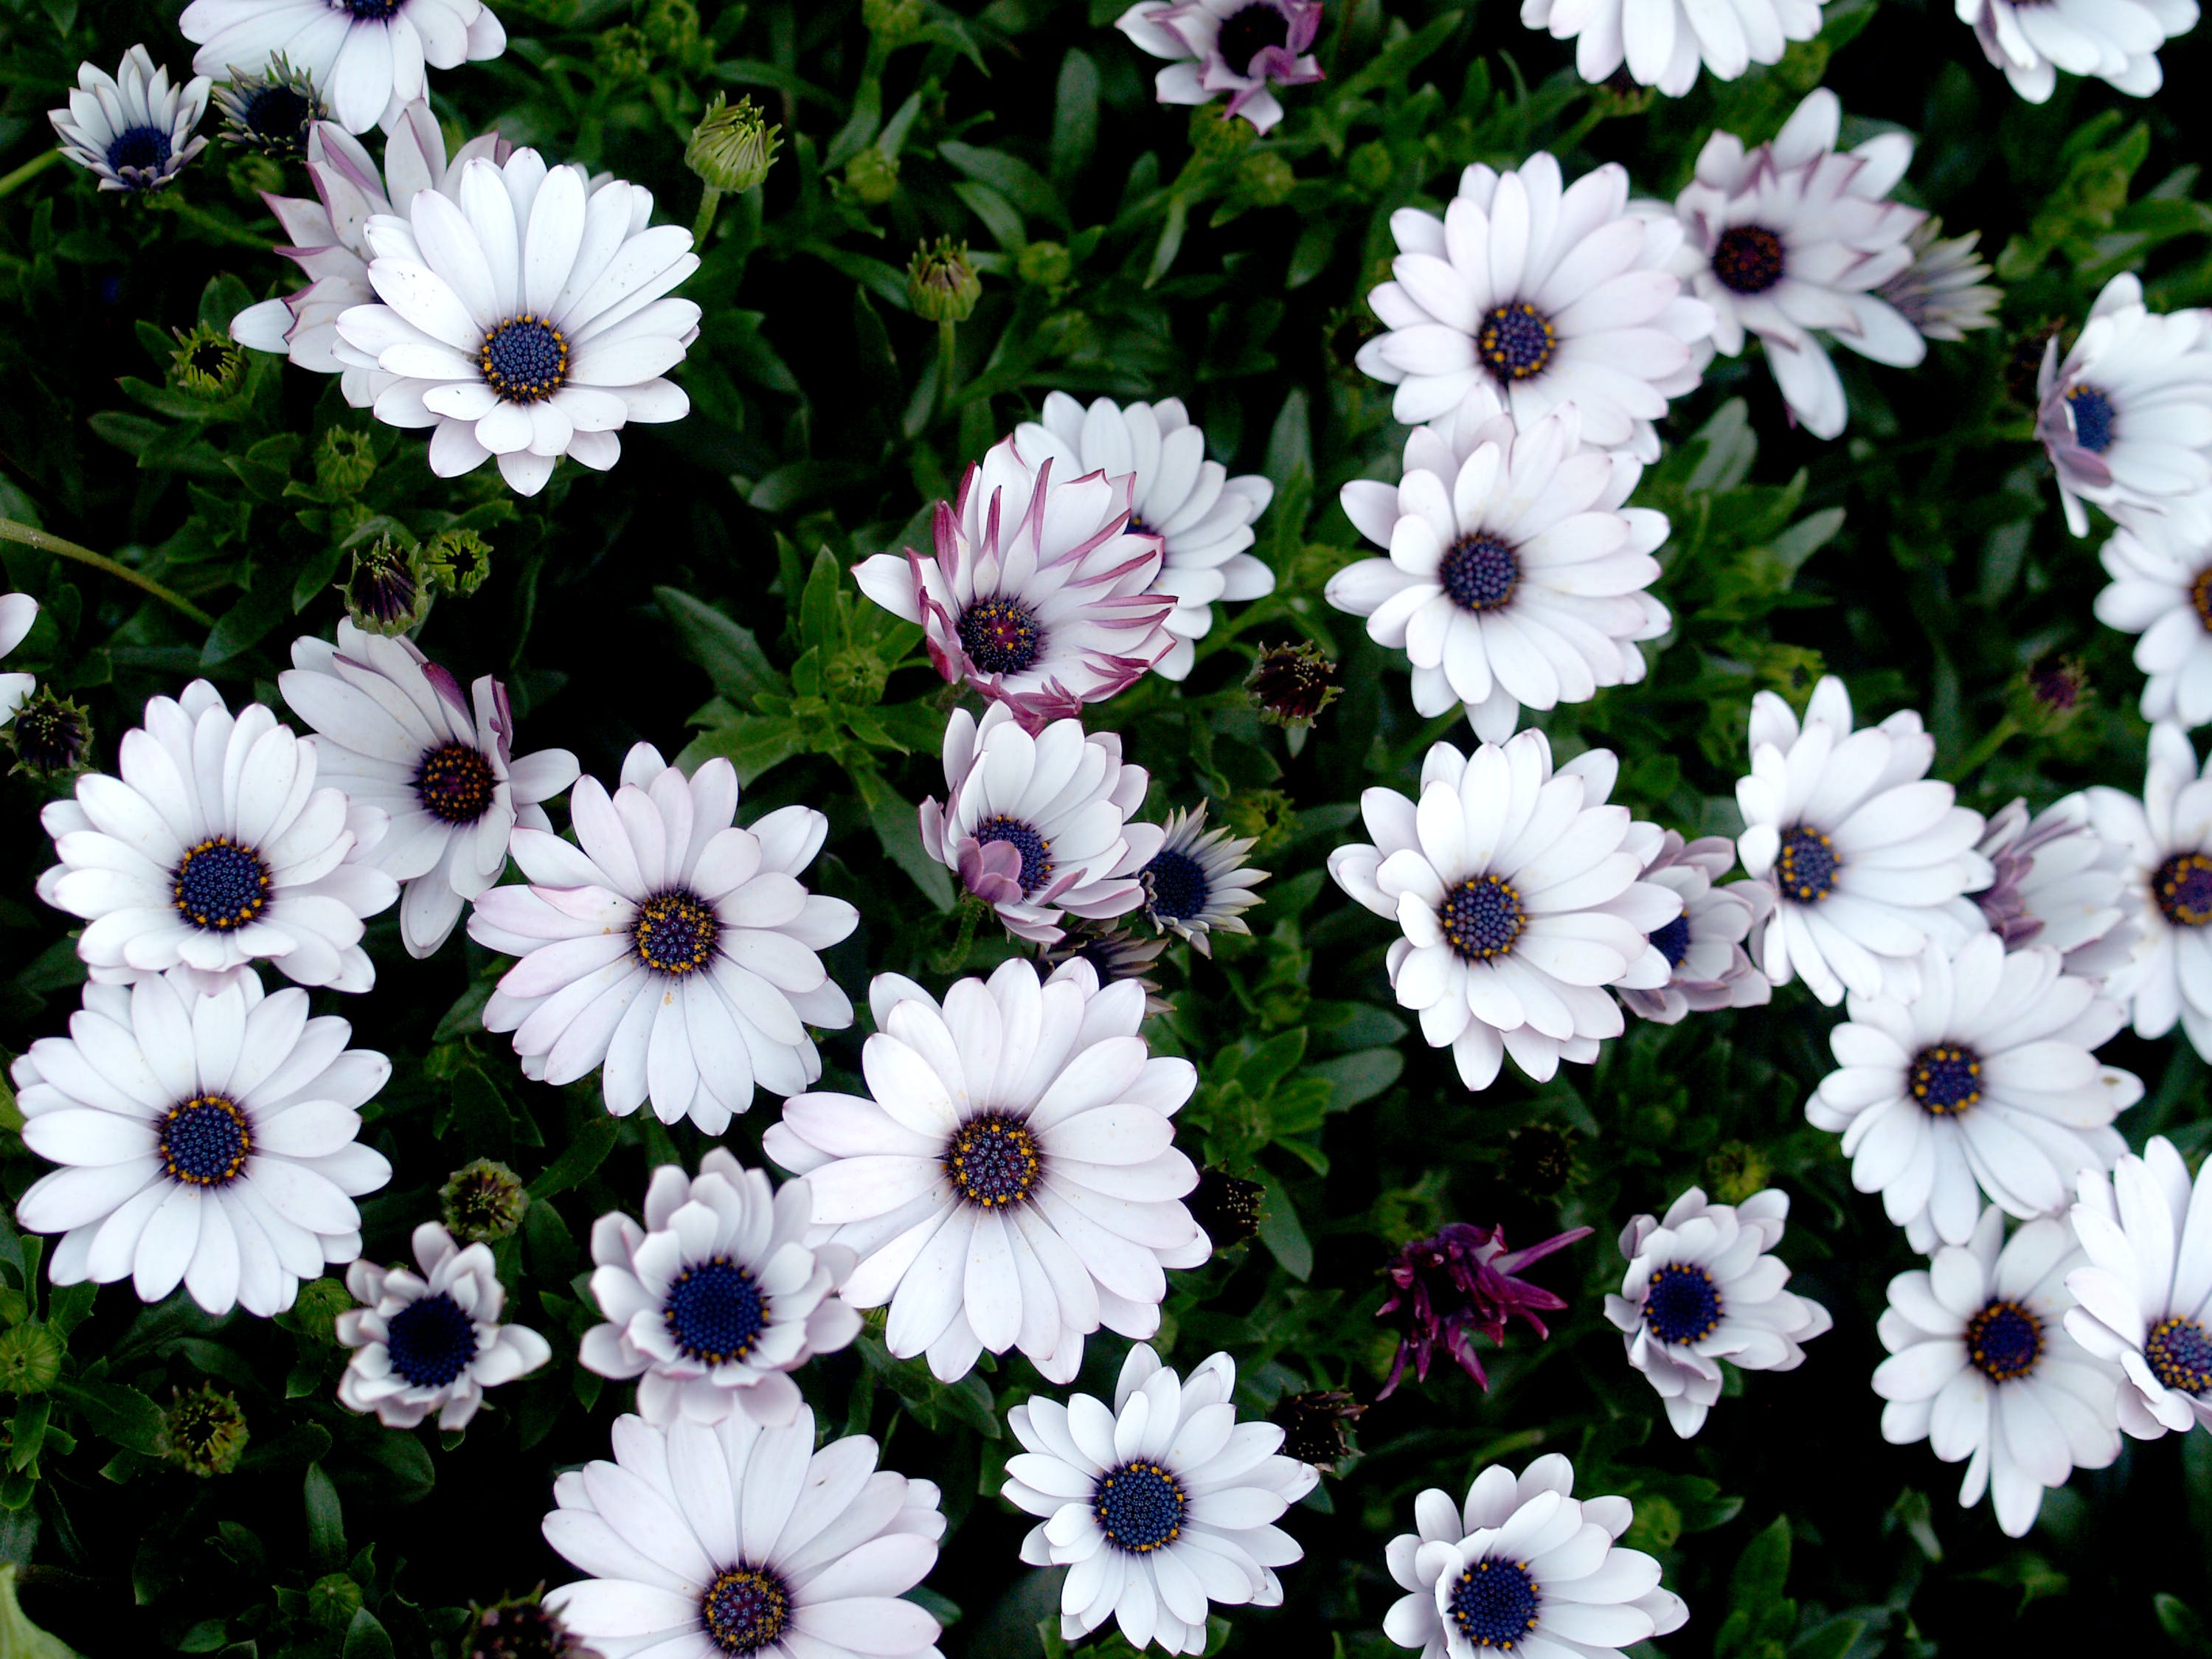 Close-up Photography of White-and-purple Petaled Flowers in Bloom